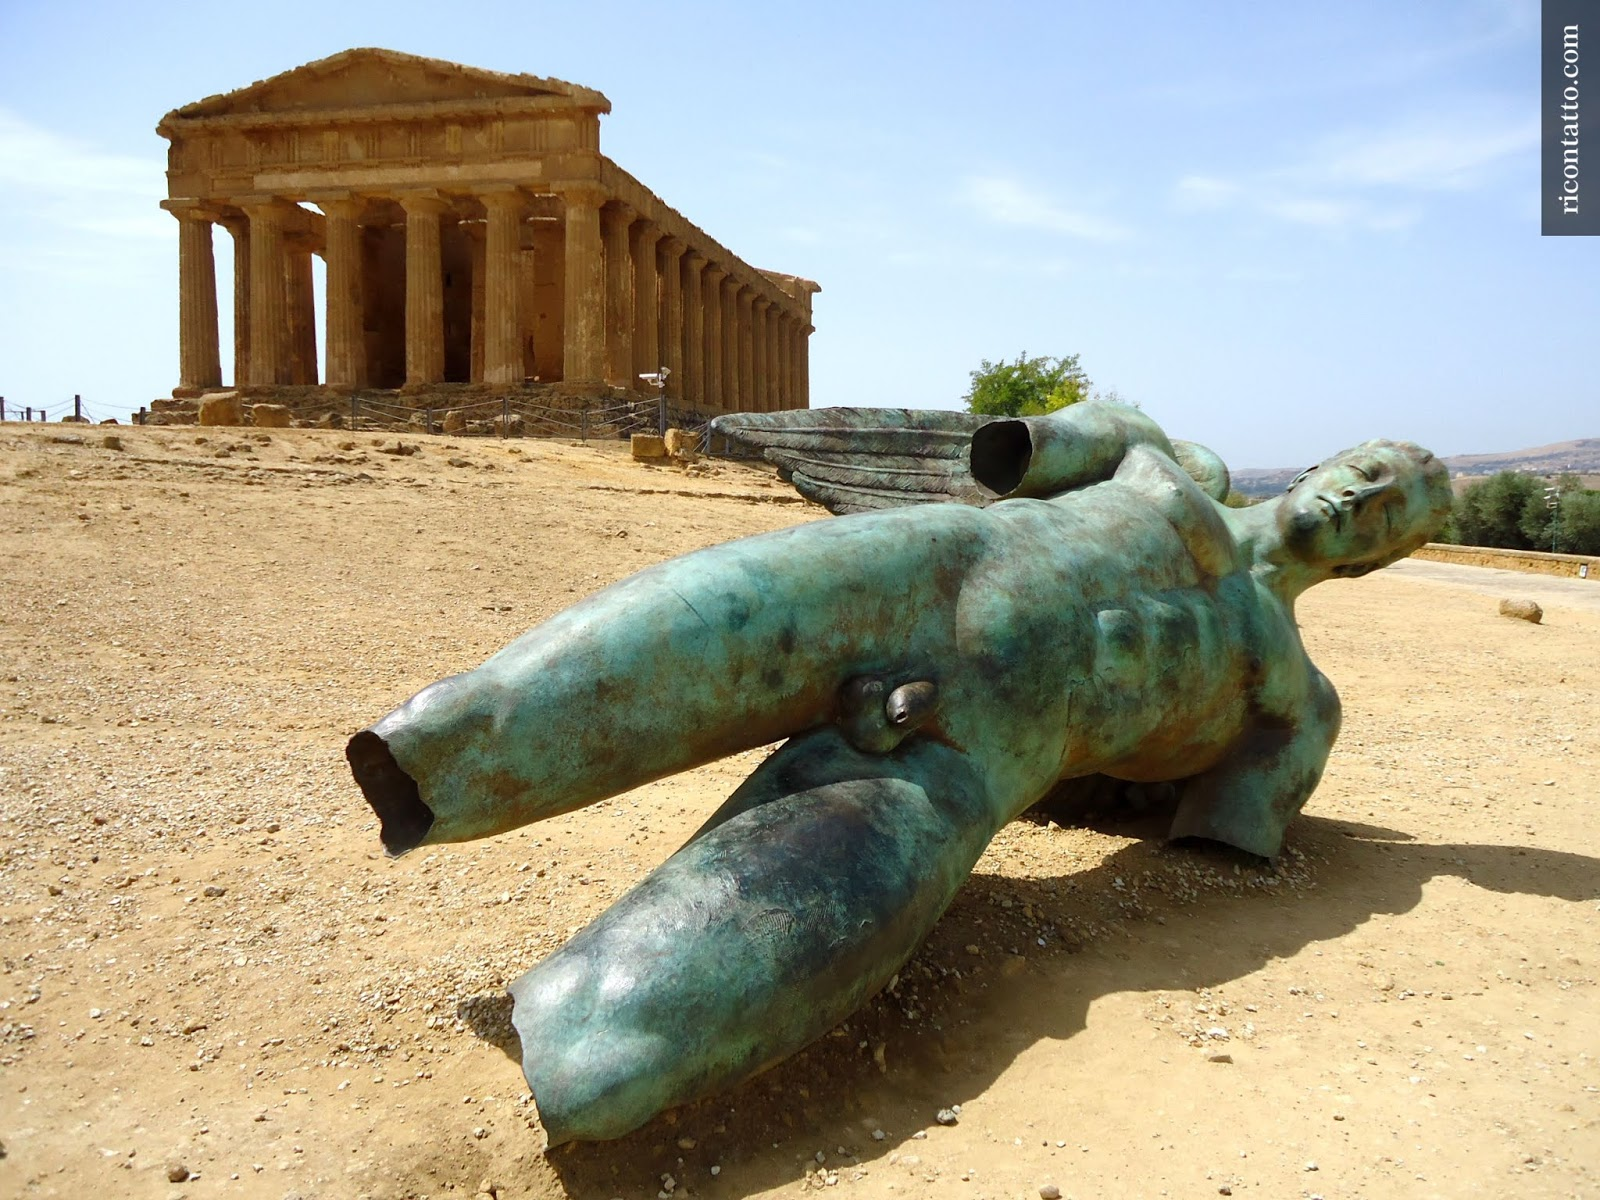 Agrigento, Sicilia, Italy - Photo #04 by Ricontatto.com